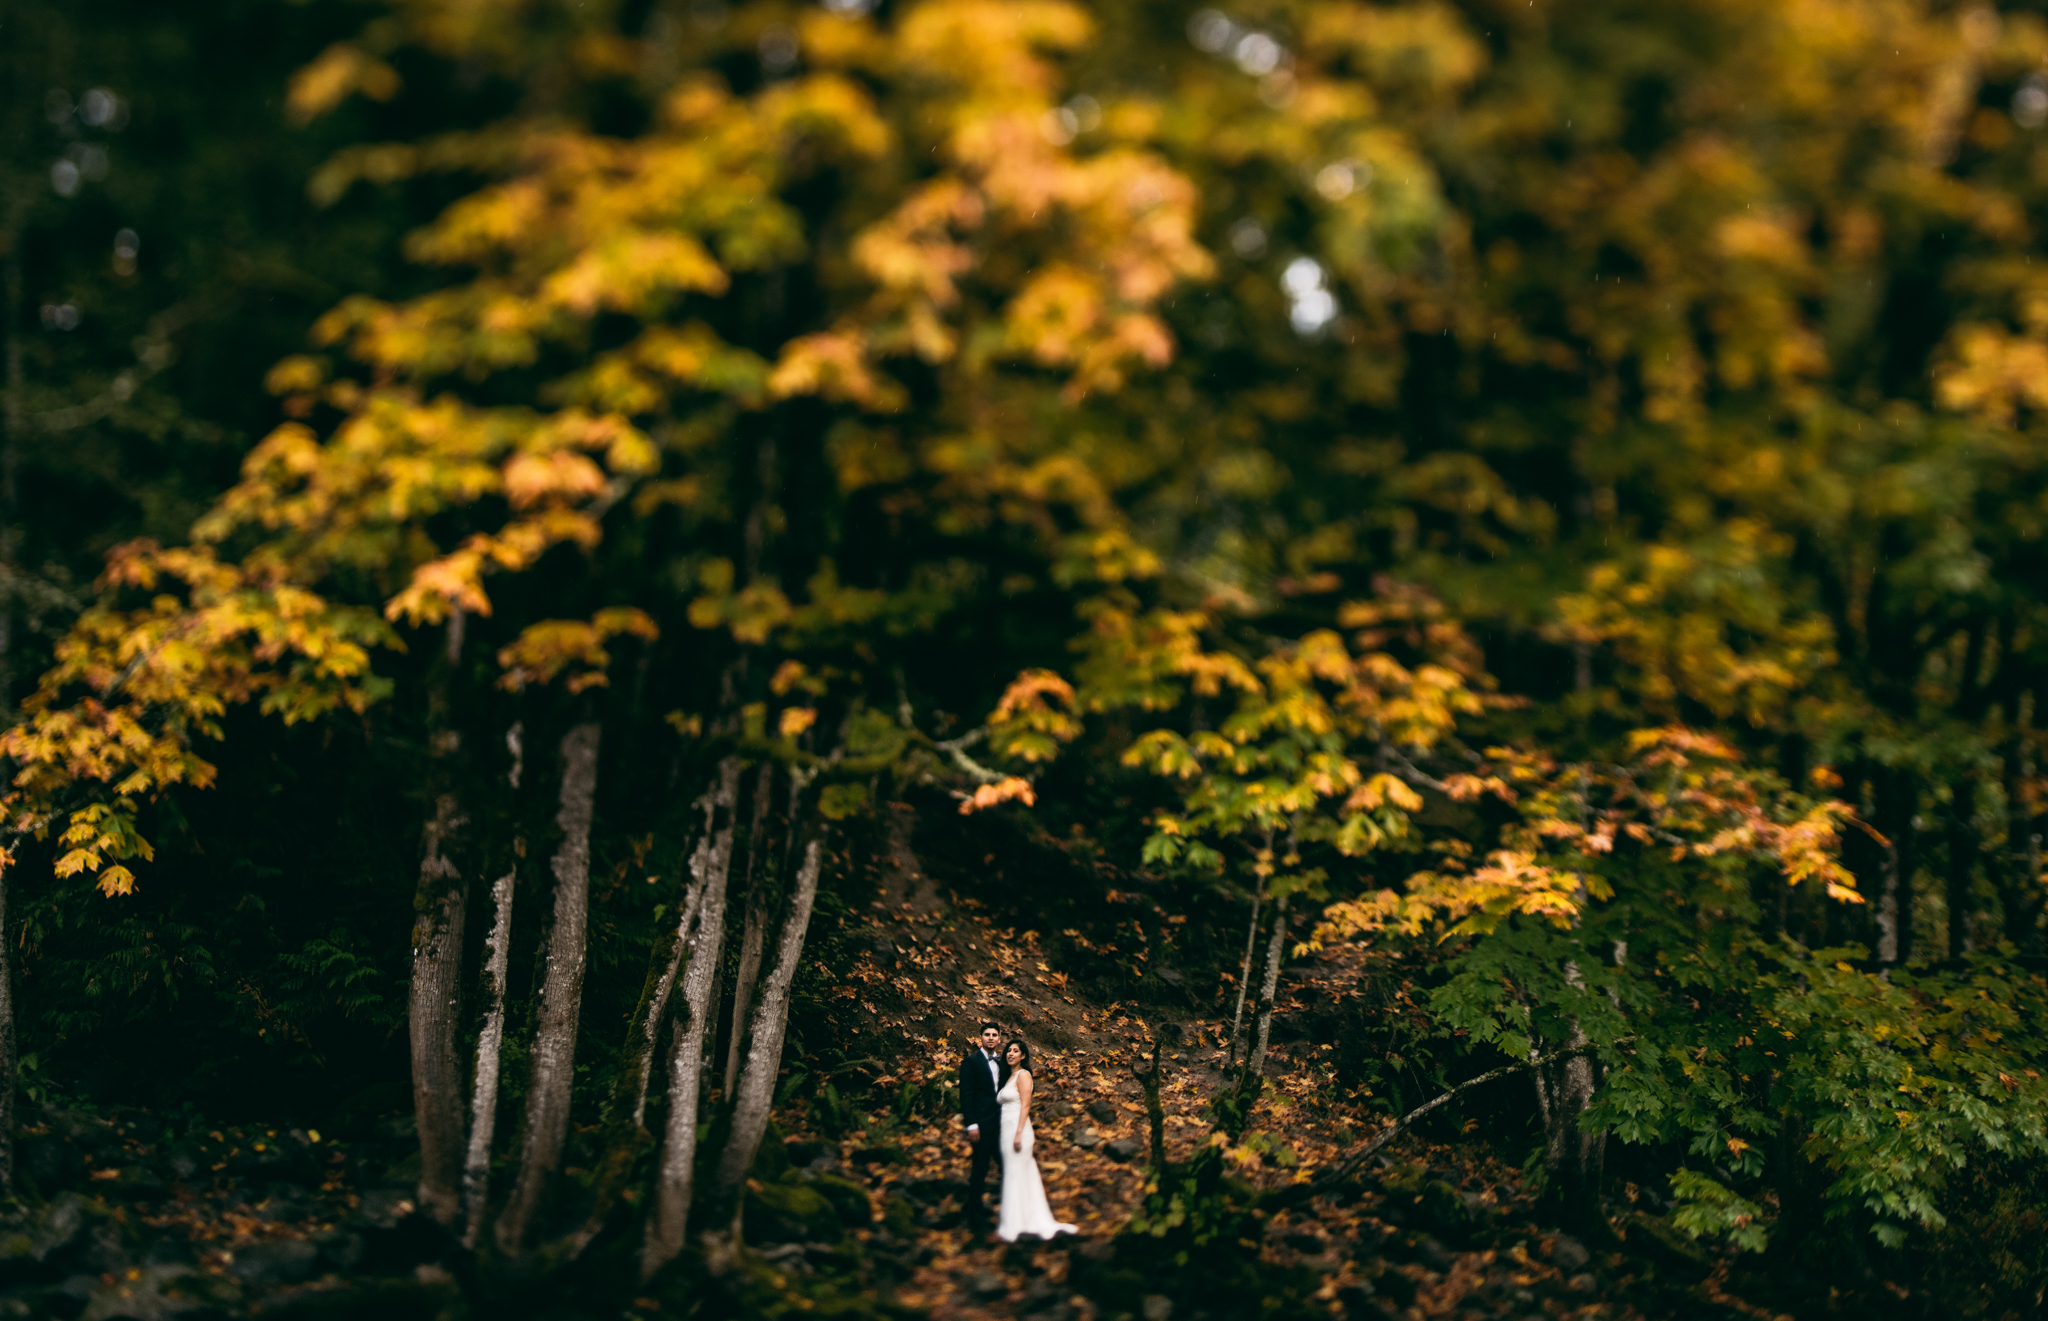 ©Isaiah & Taylor Photography - Los Angeles Wedding - Snoqualmie, Washington Honeymoon-023.jpg